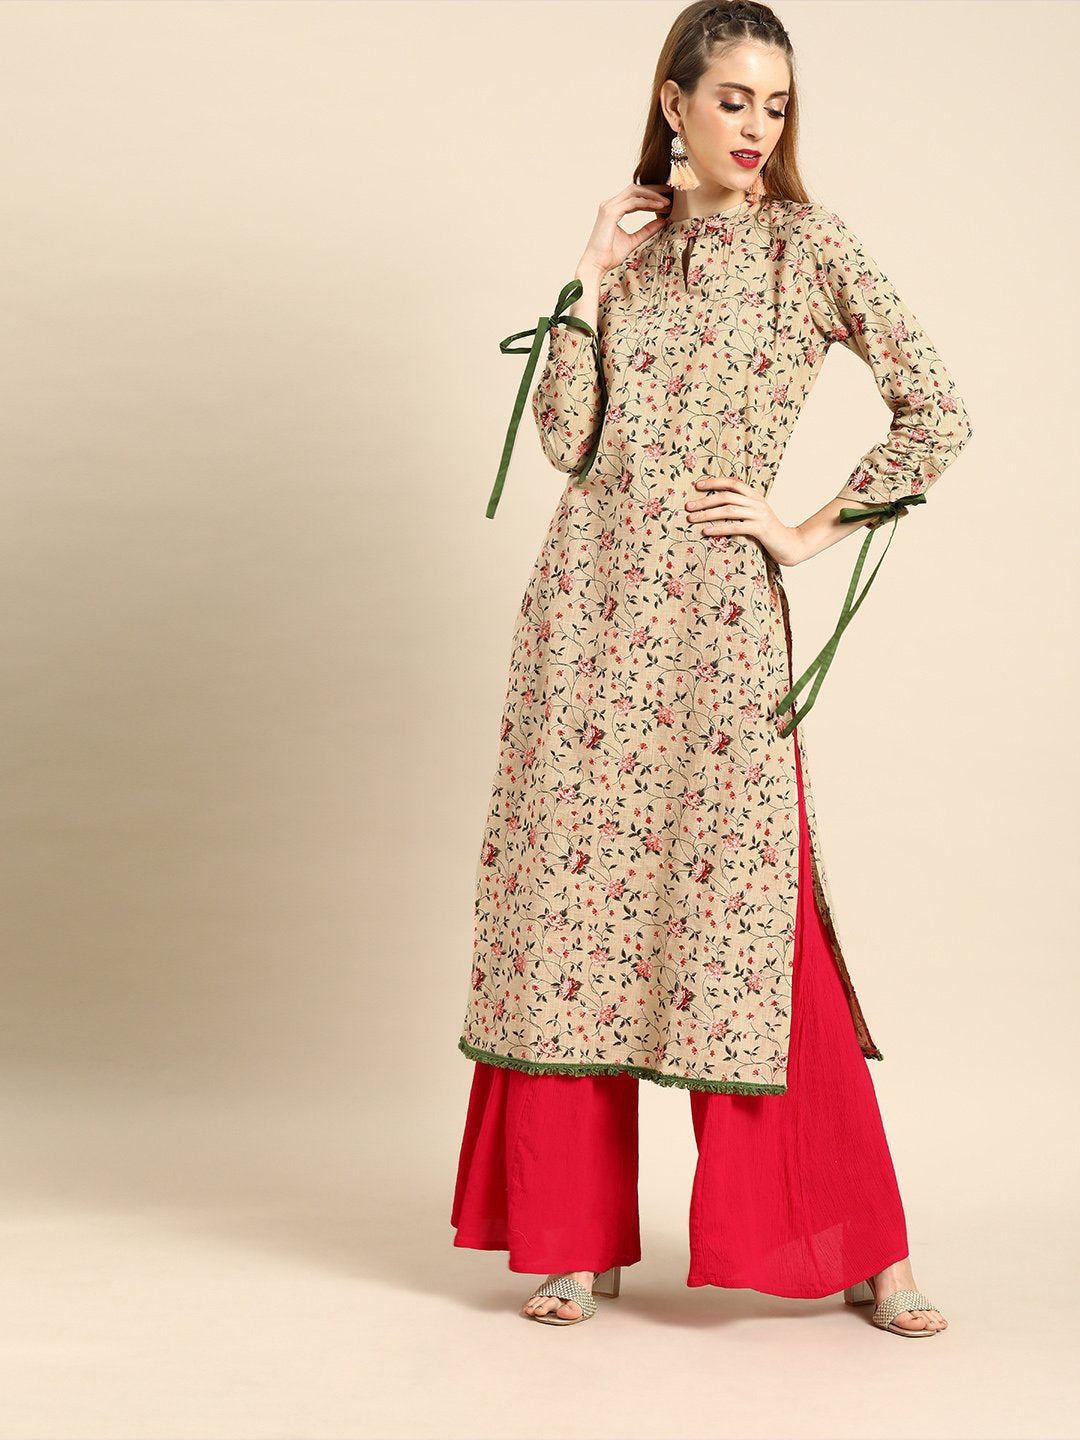 Women Beige Calf Length Long Sleeves Straight Floral Printed Cotton Kurta